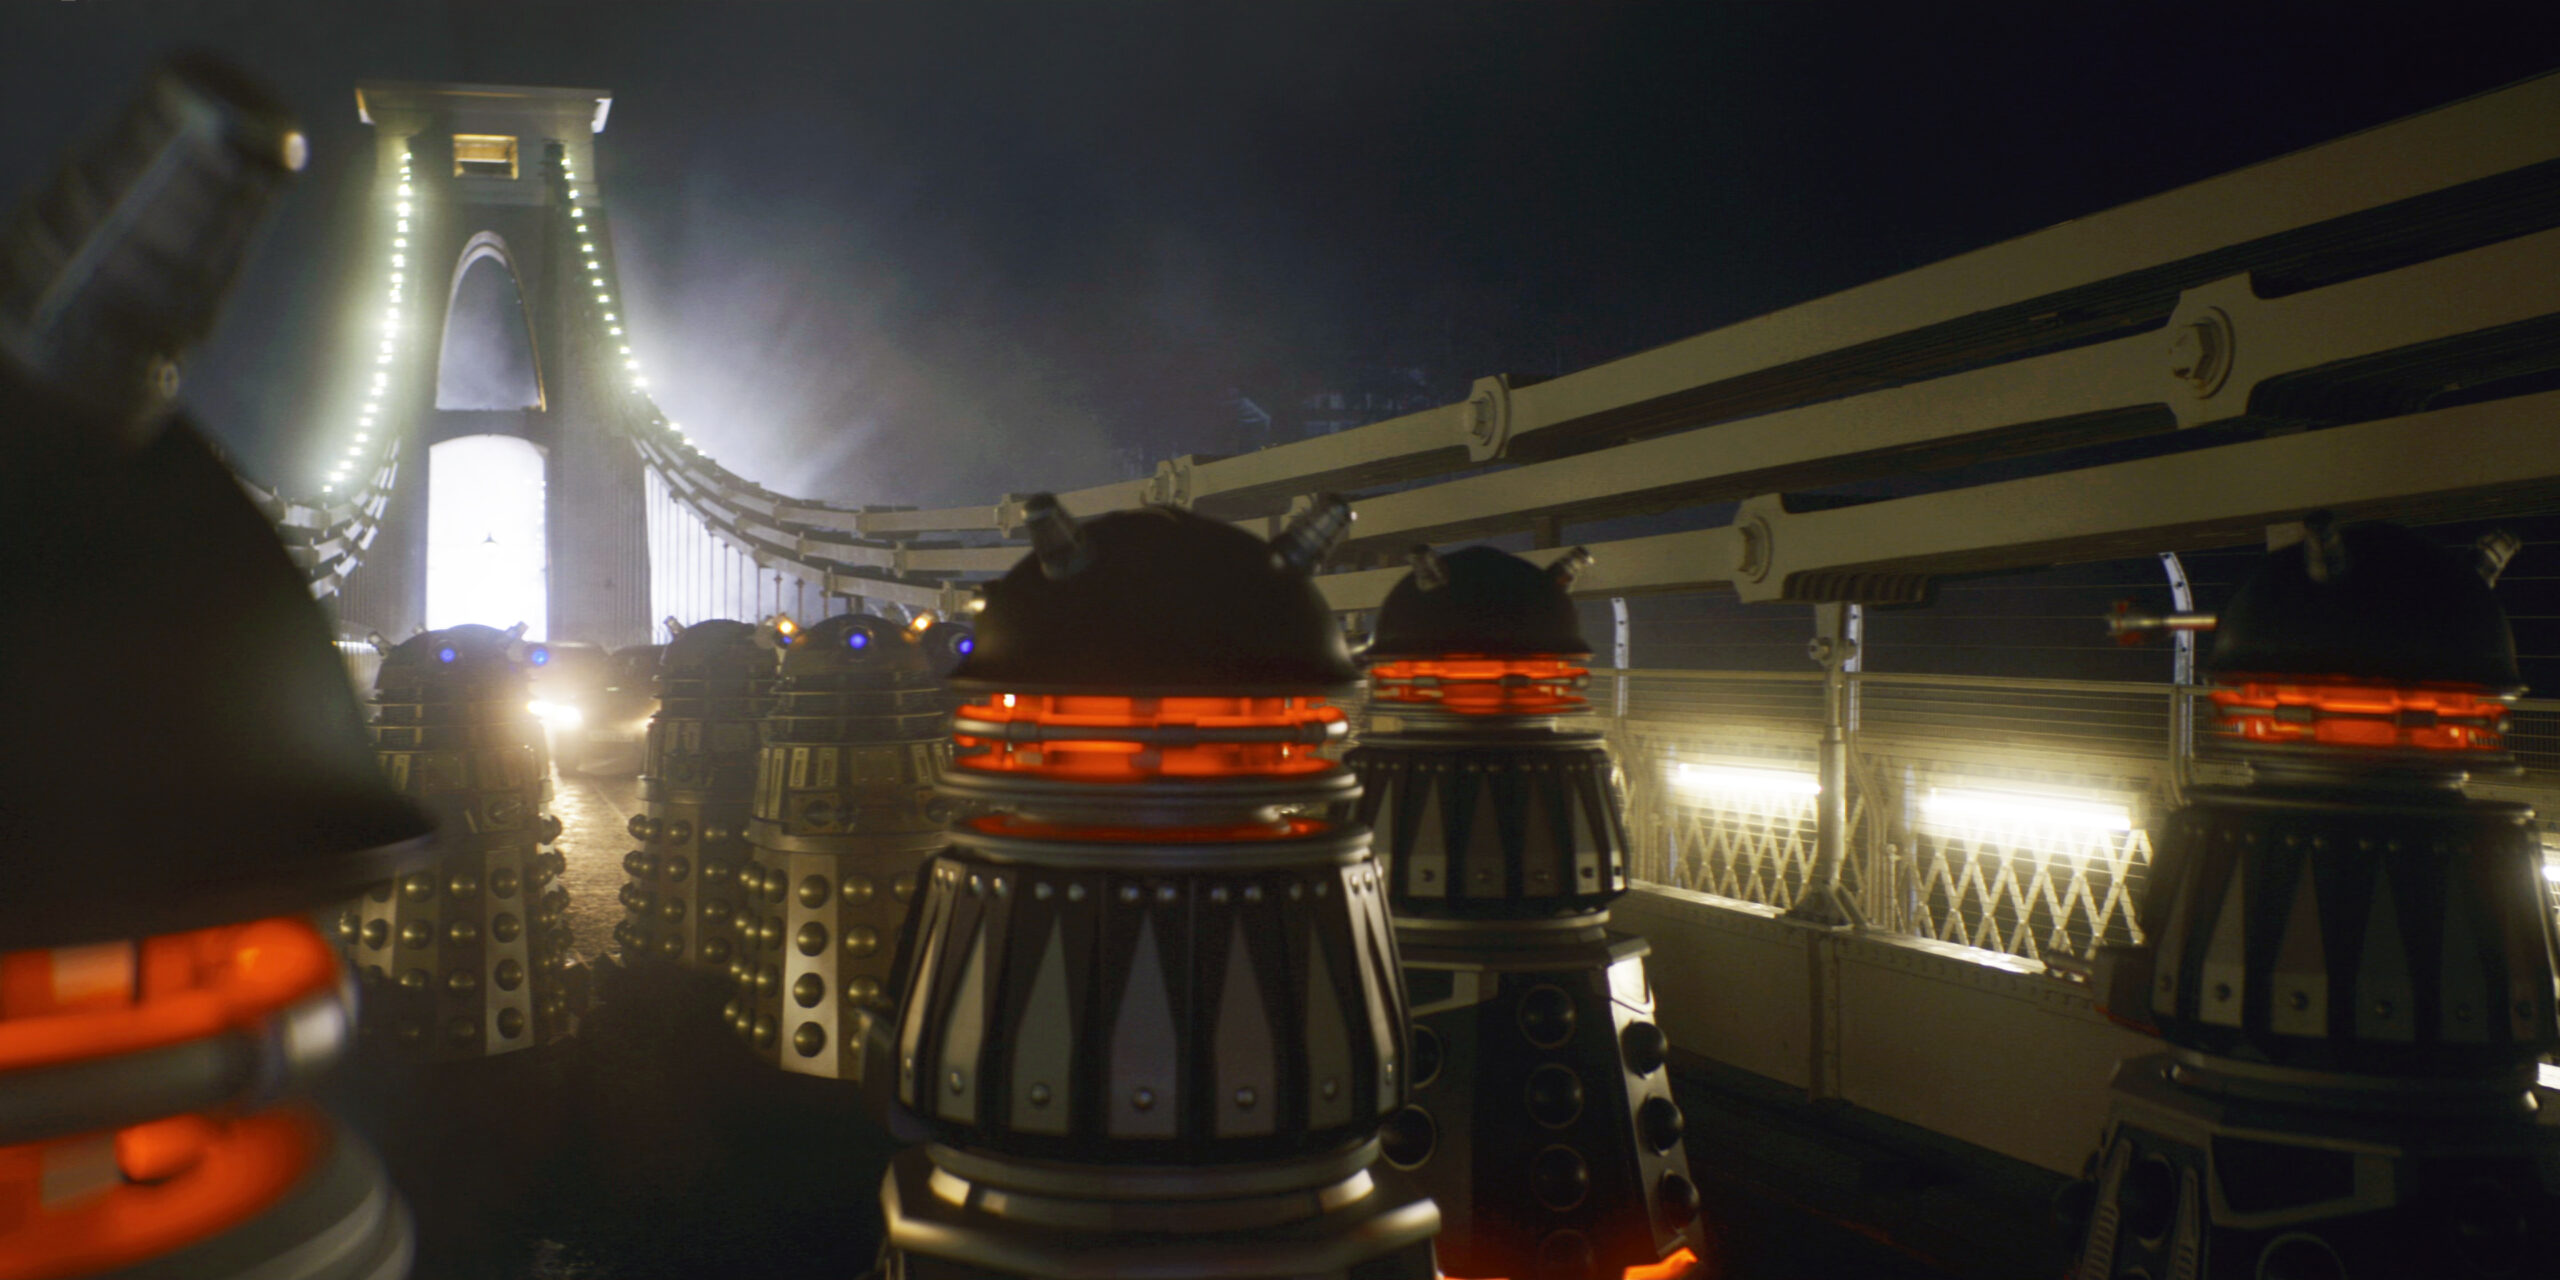 CGI Daleks boosted the numbers of Security Drones on the bridge. The two on the far right are the real props!